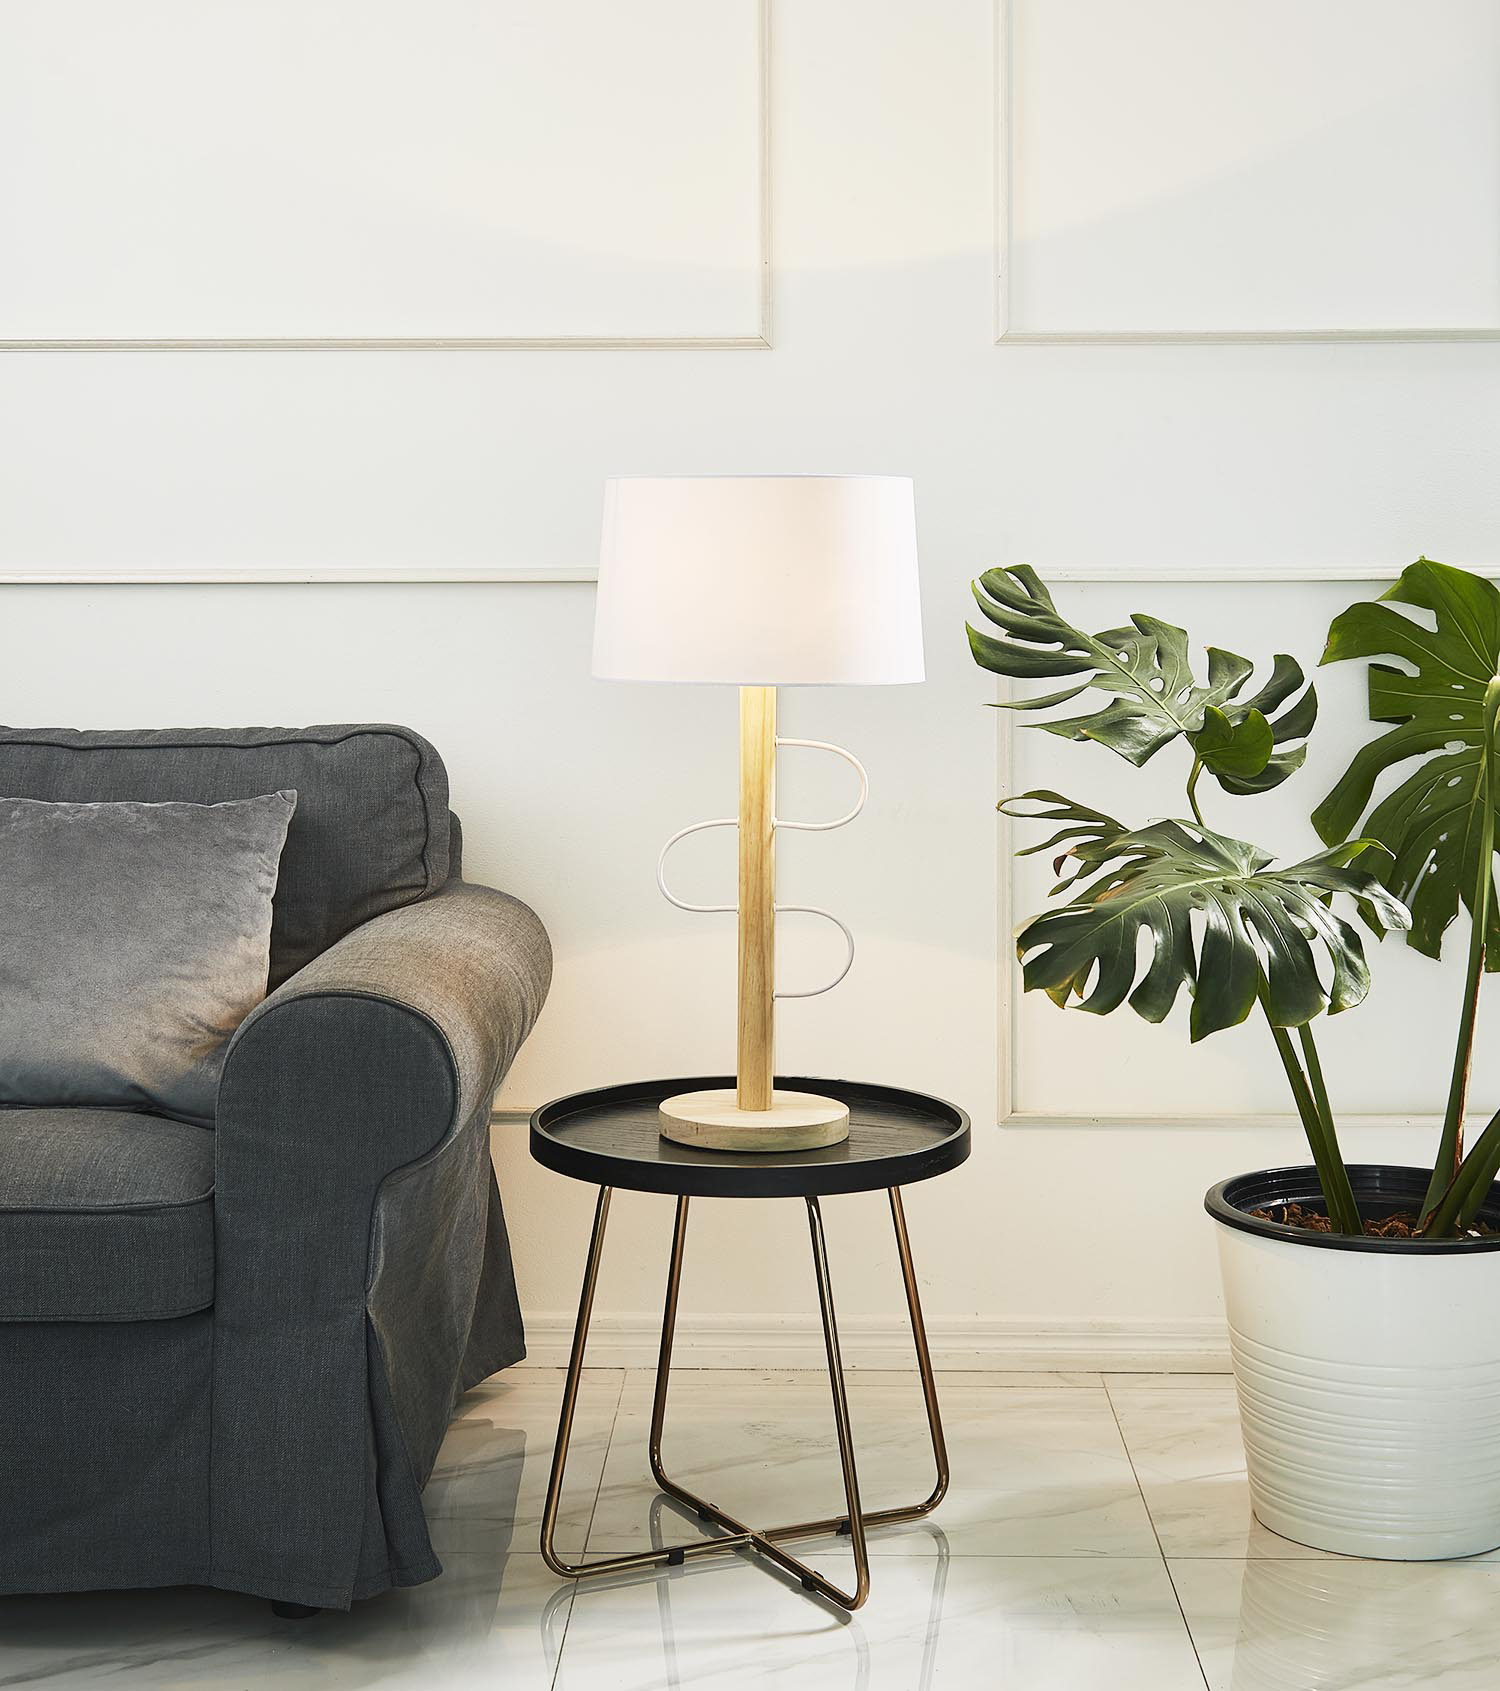 Wooden pulse table lamp product photo #1